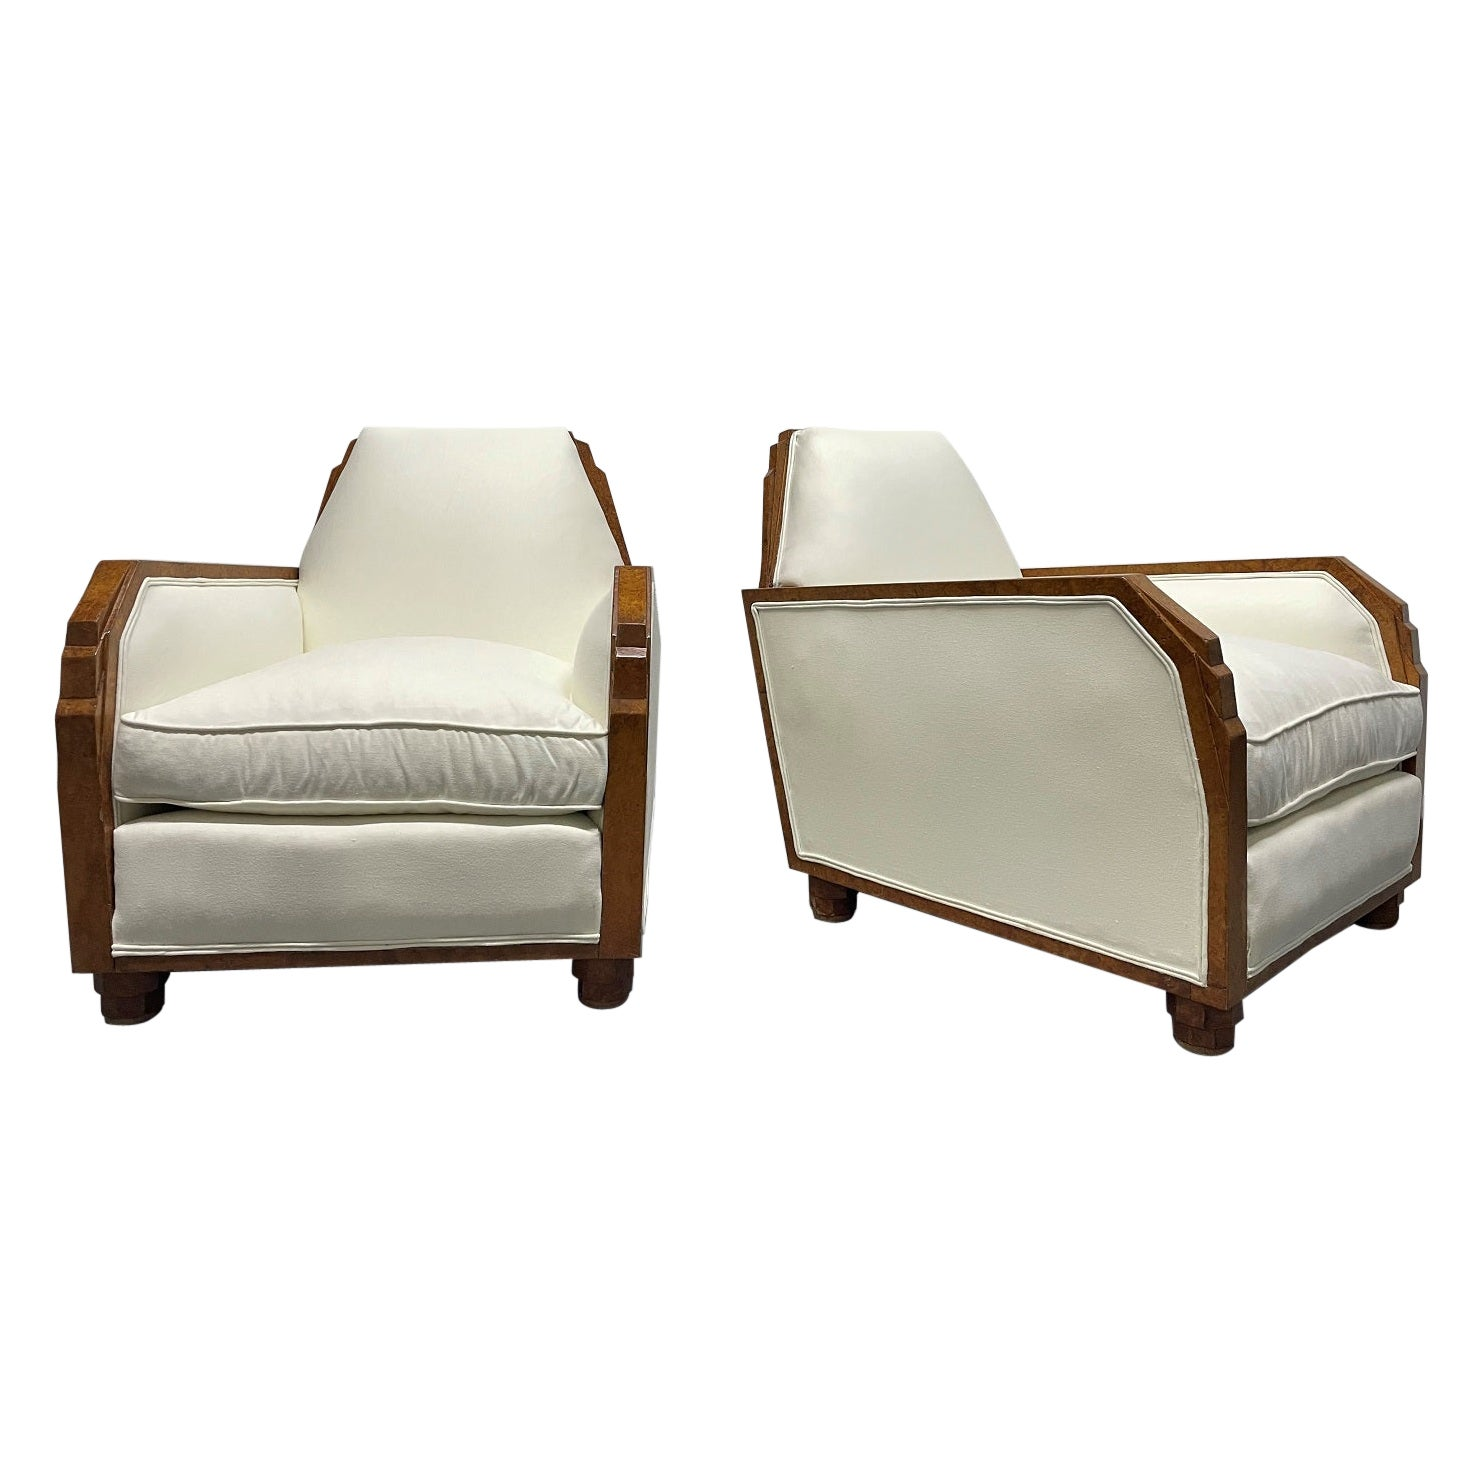 Pair 1940s French Art Deco Lounge Chairs